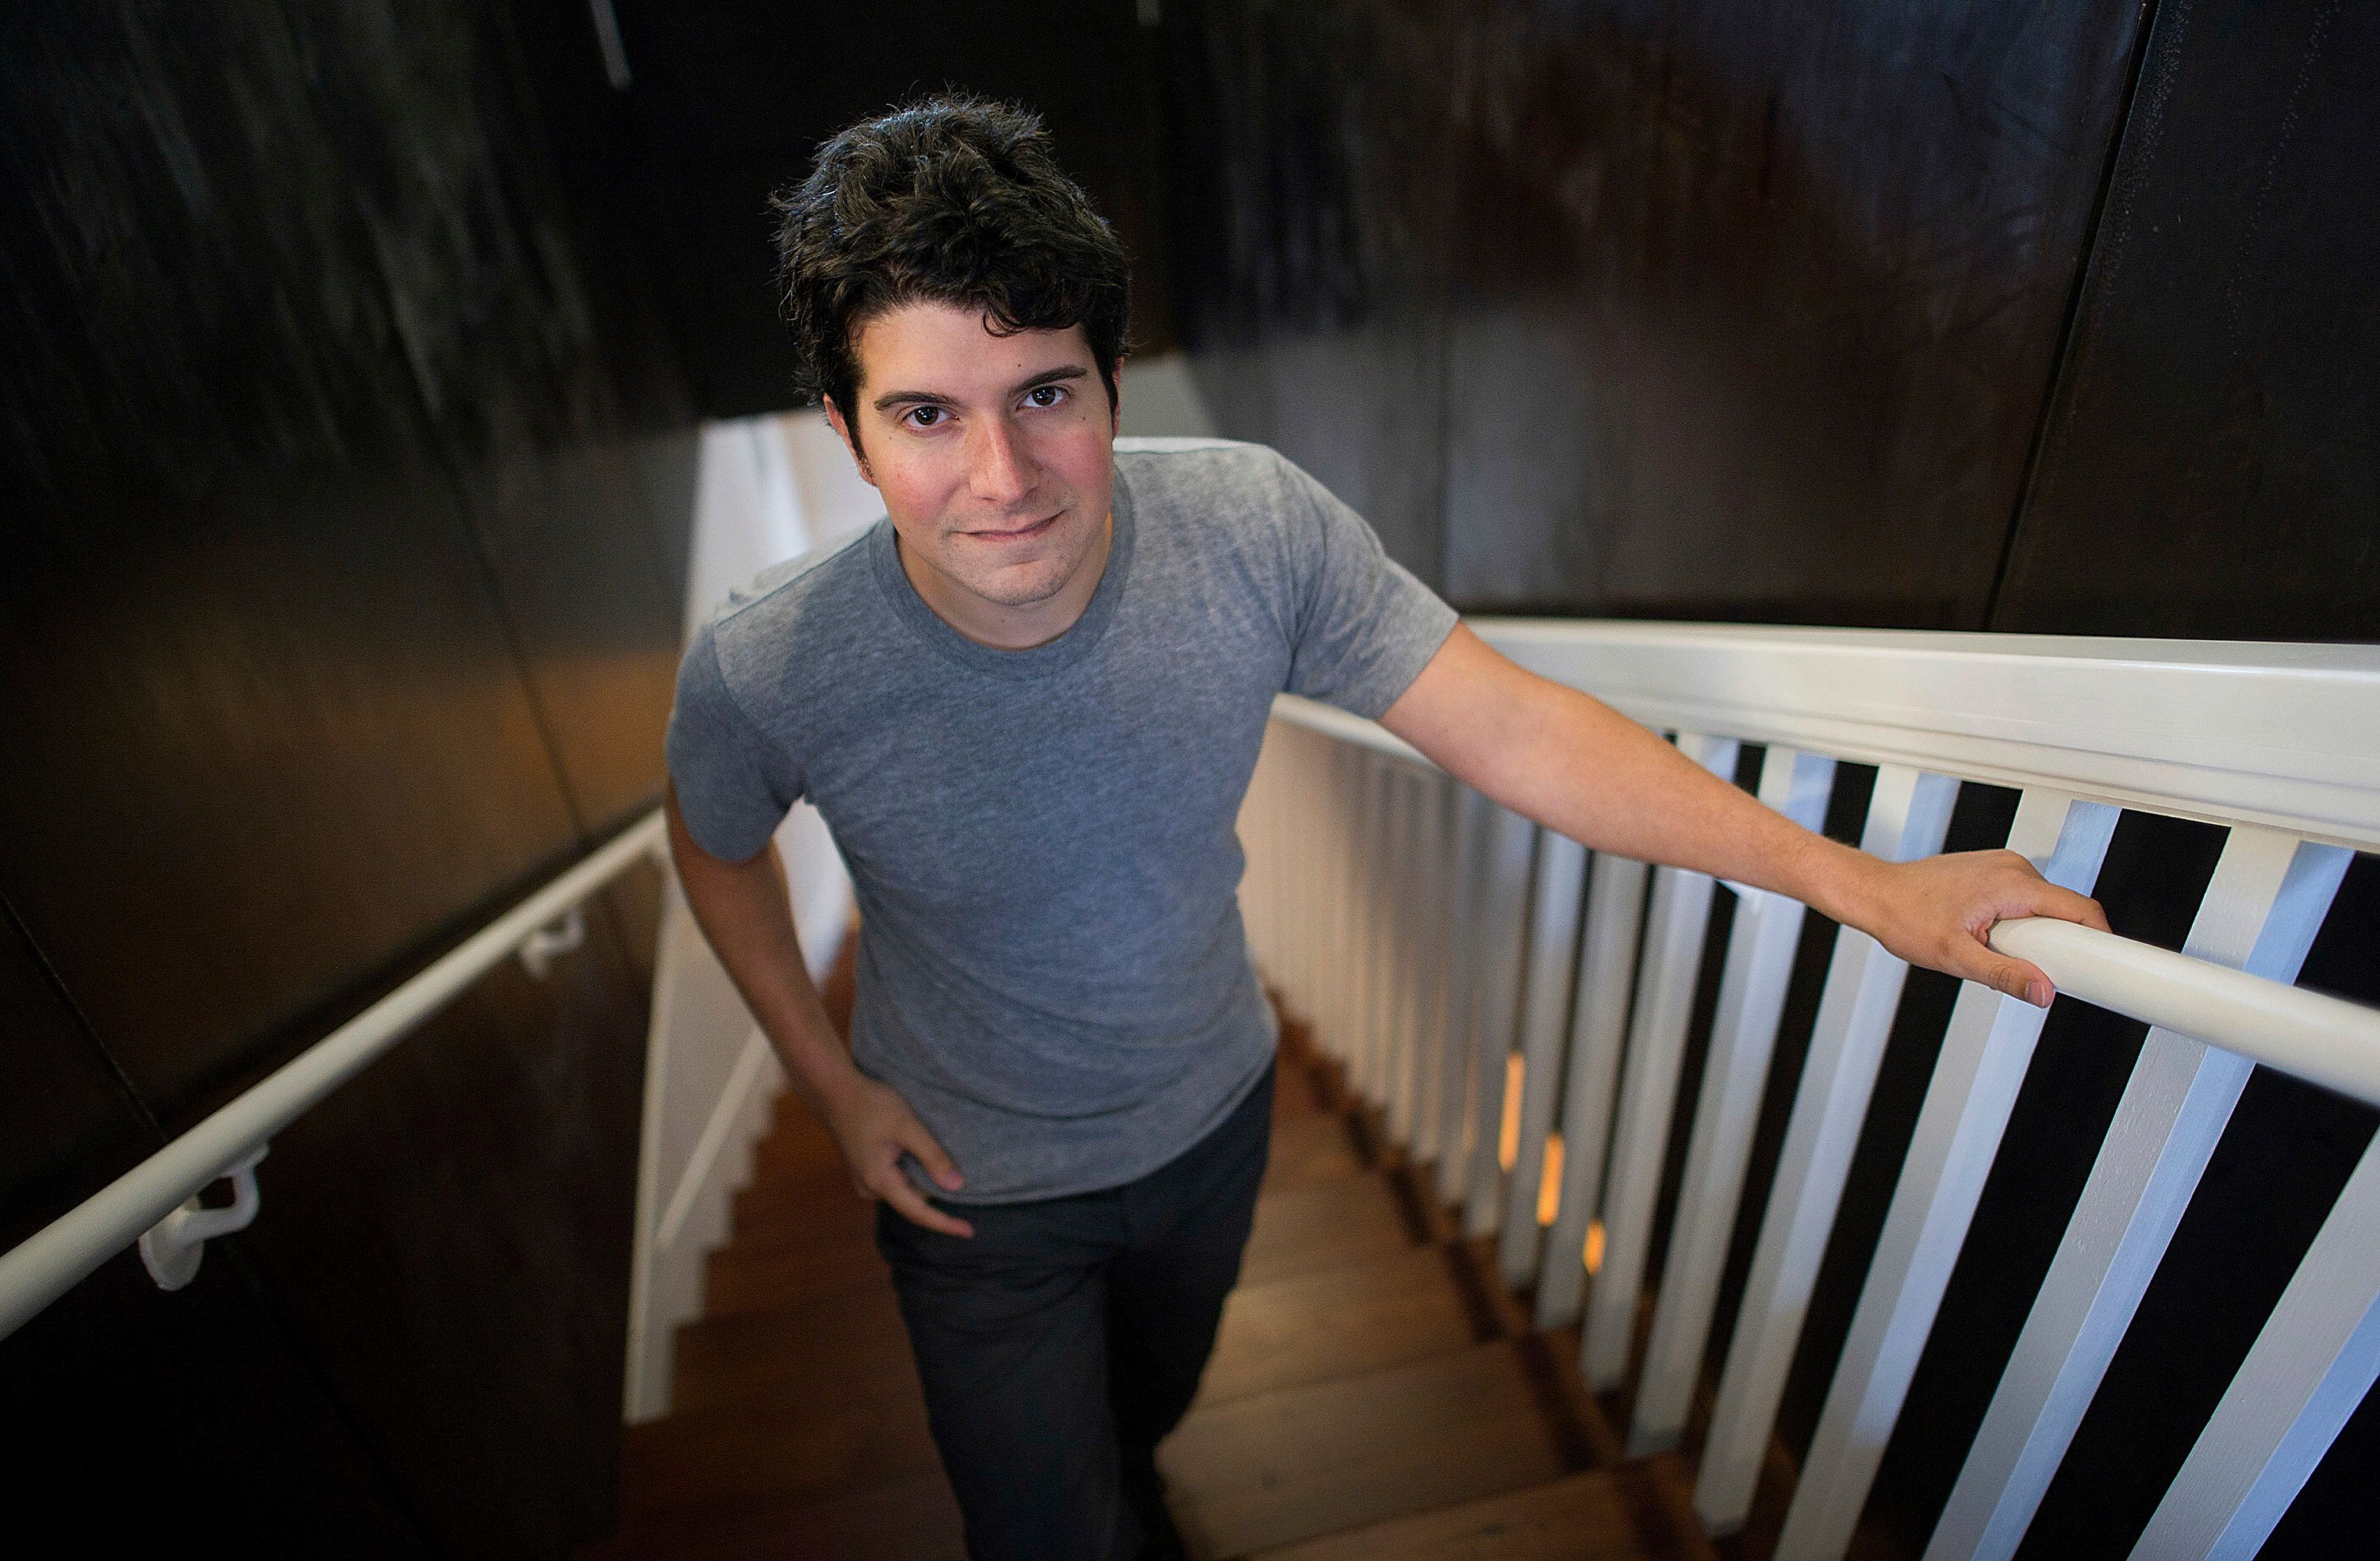 Anthony Casalena, chief executive officer and founder of Squarespace Inc., stands for a photograph after an interview in San Francisco, California, U.S., on Thursday, July 26, 2012. Squarespace, a web publishing company that provides individuals and small businesses with the ability to build and maintain well-designed websites, recently launched it's latest version offering new tools for web designers and engineers such as drag and drop and scaling. Photographer: David Paul Morris/Bloomberg via Getty Images